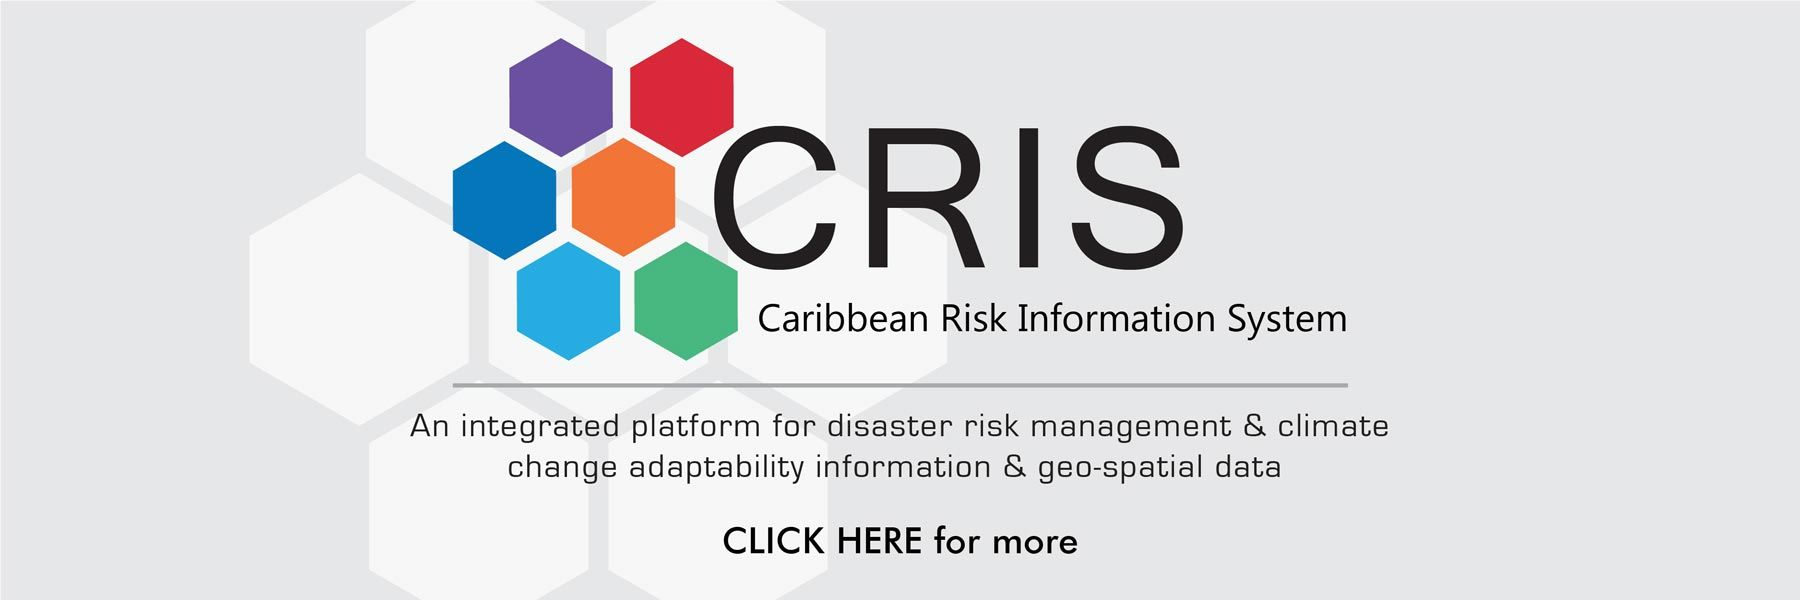 Caribbean Disaster Emergency Management Agency - CDEMA